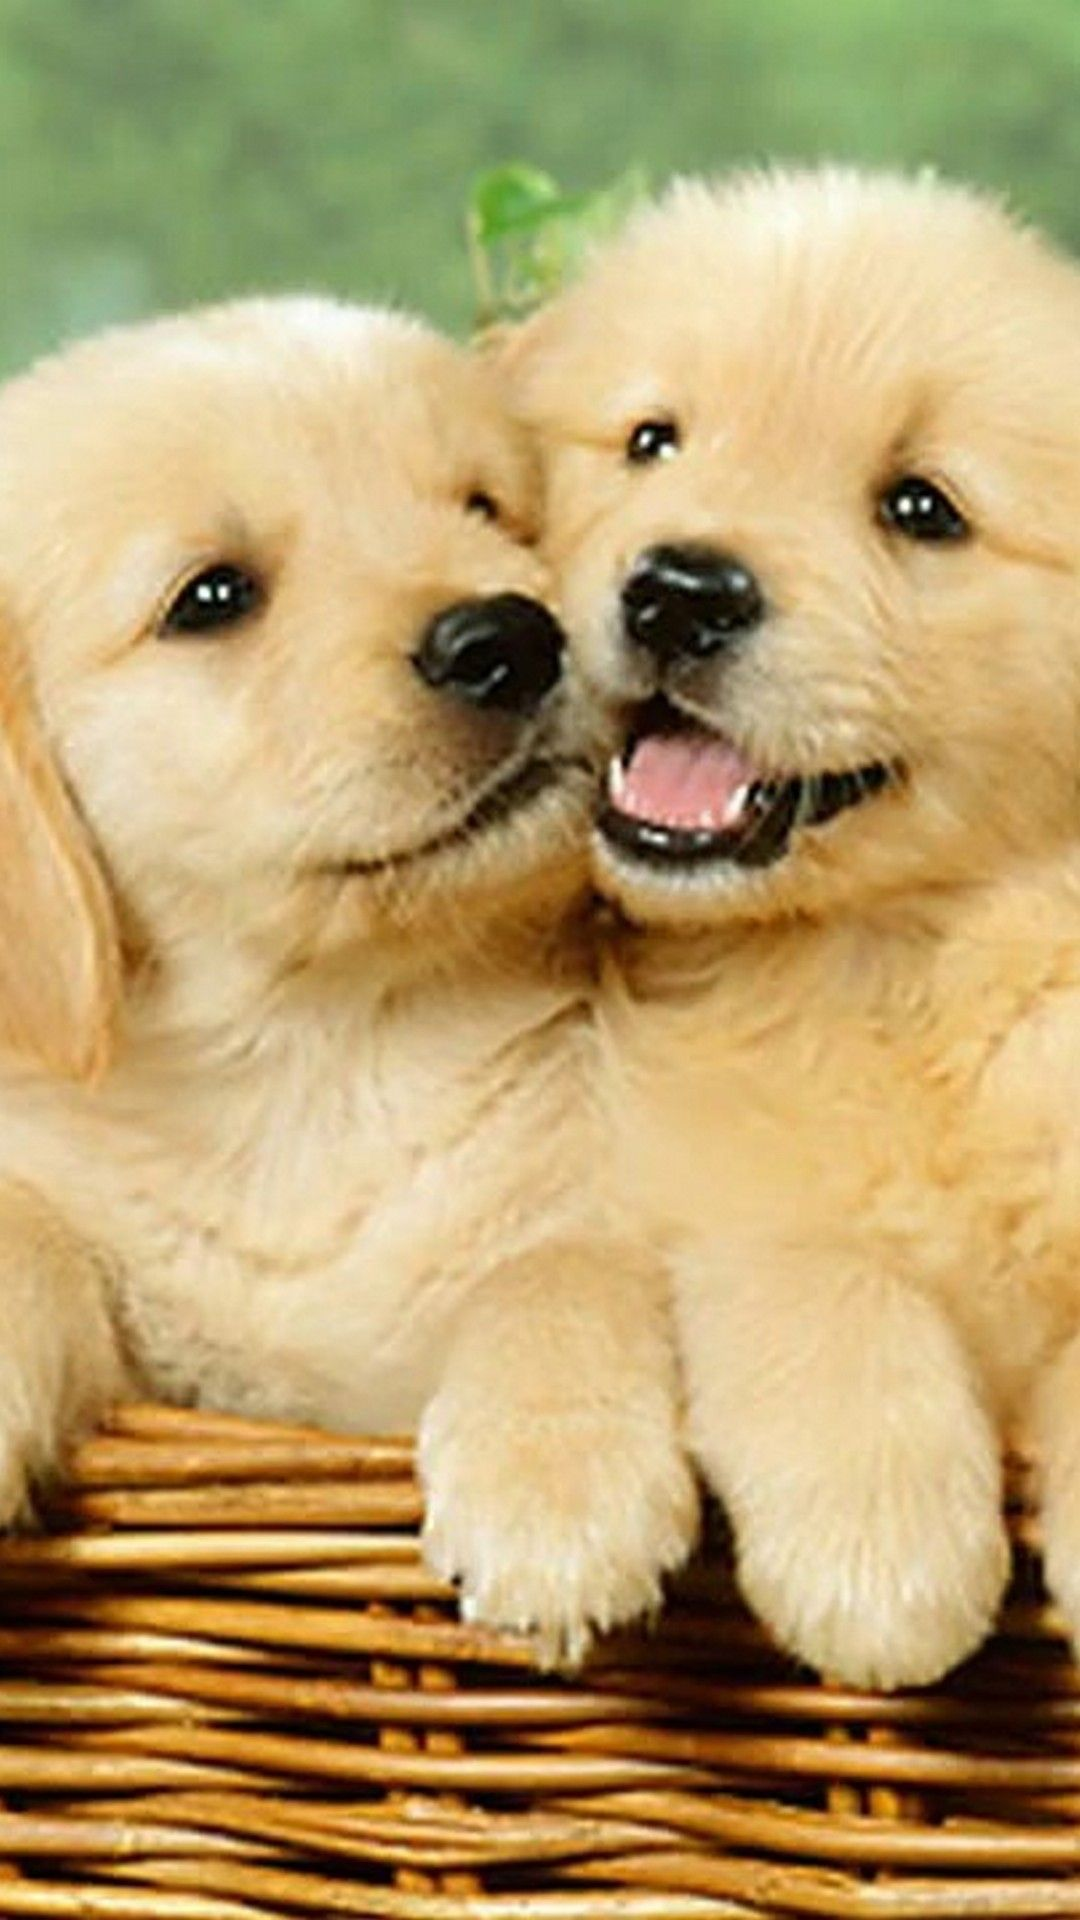 Cute Puppies Wallpaper Iphone | floweryred2.com